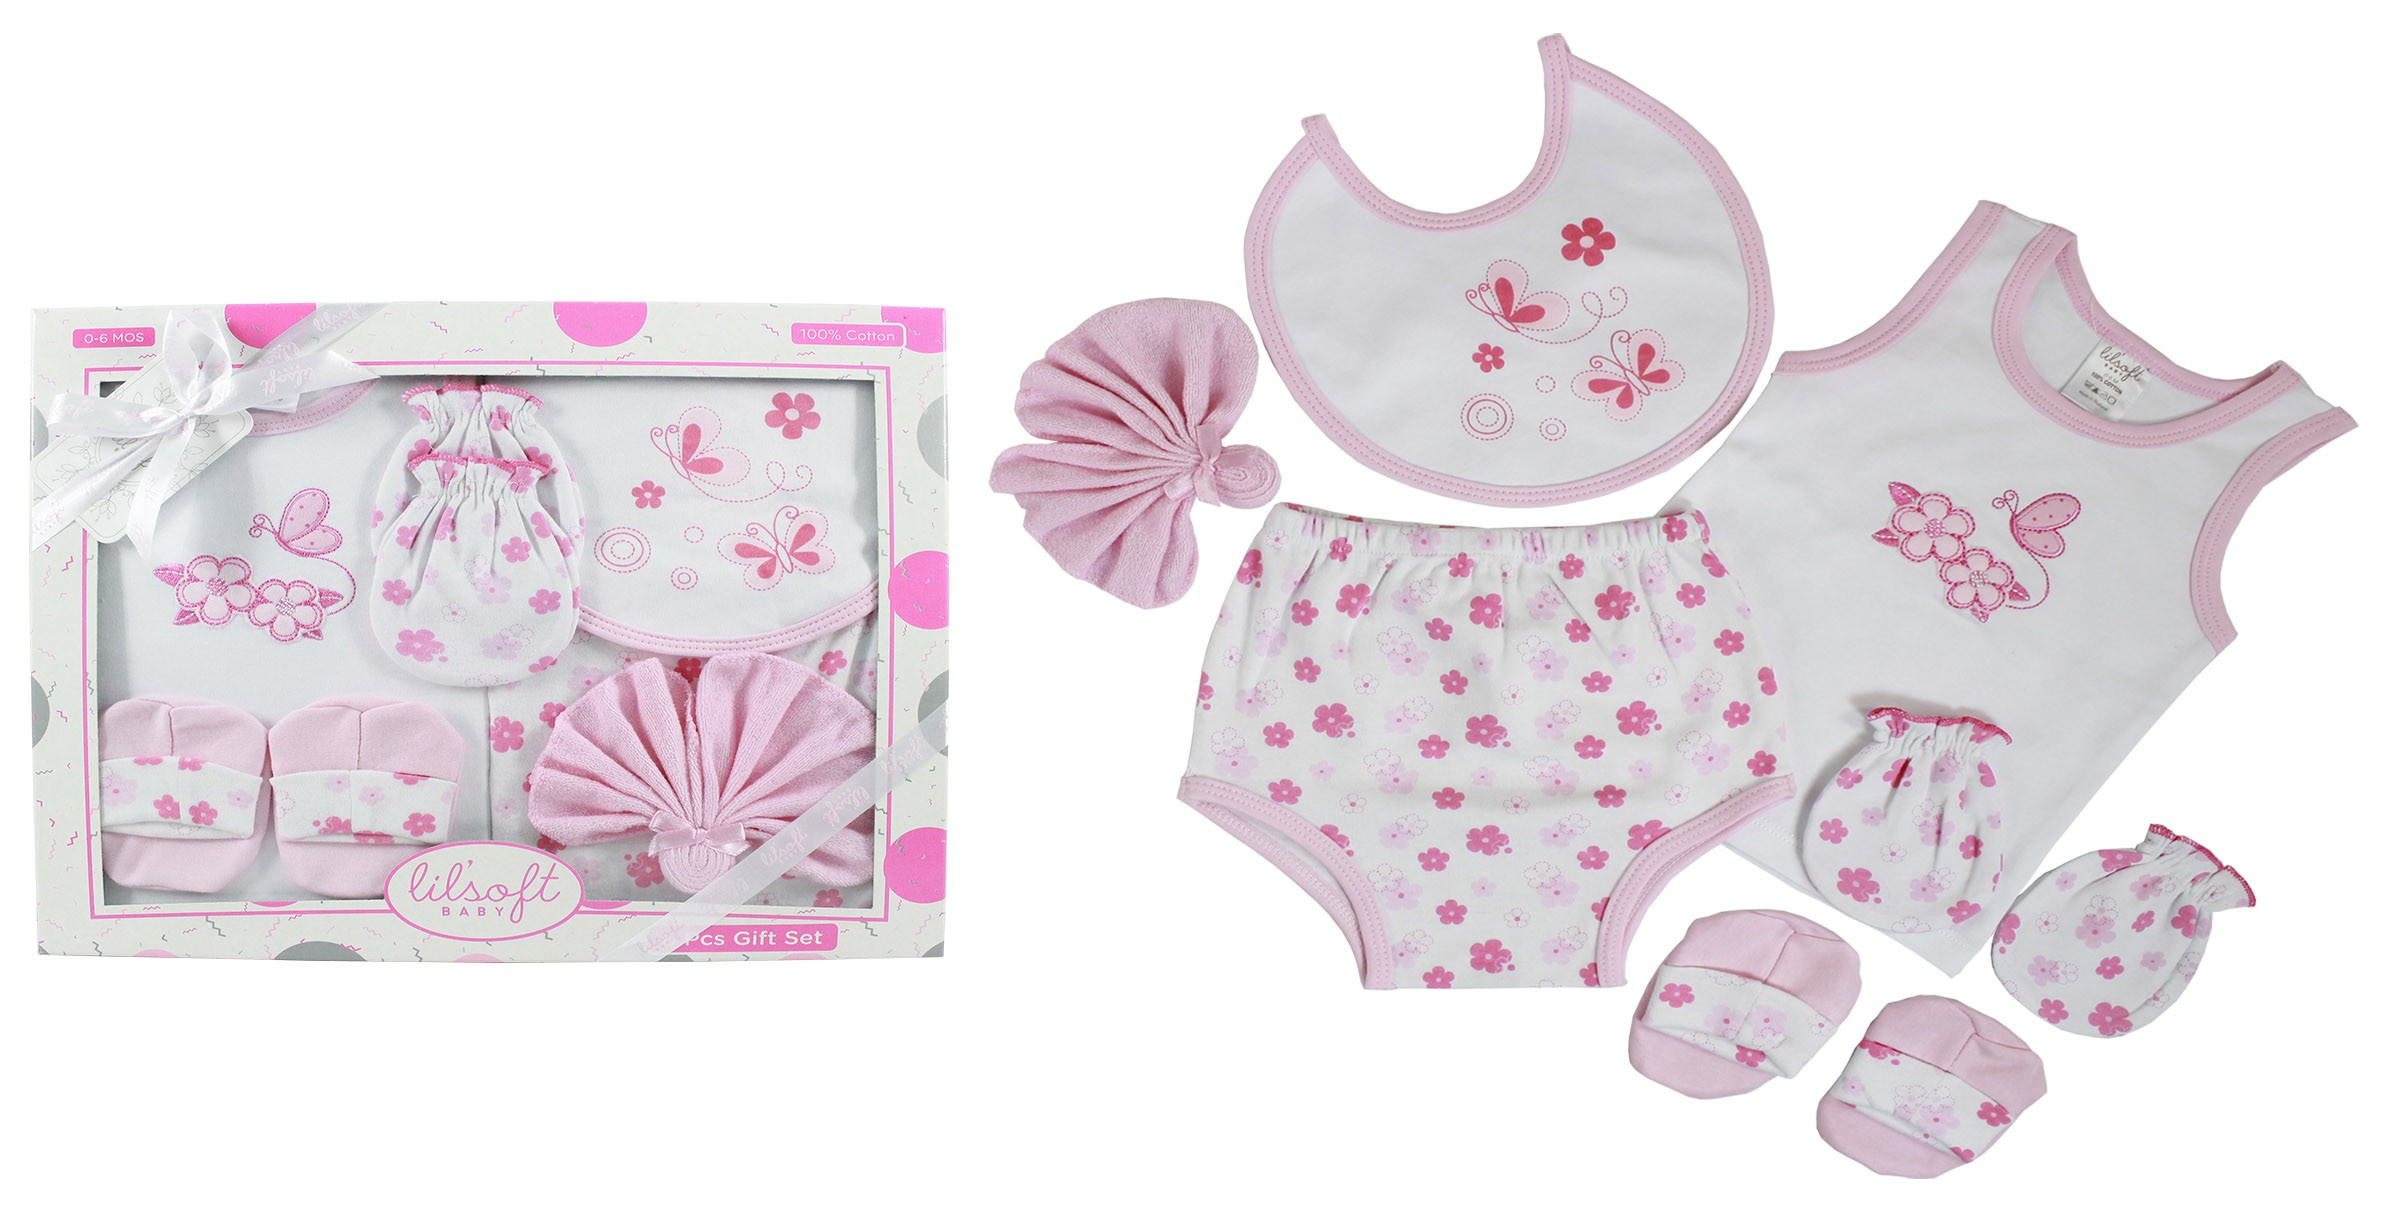 Baby Gift Sets For Twins : Pcs baby gift set lilsoft